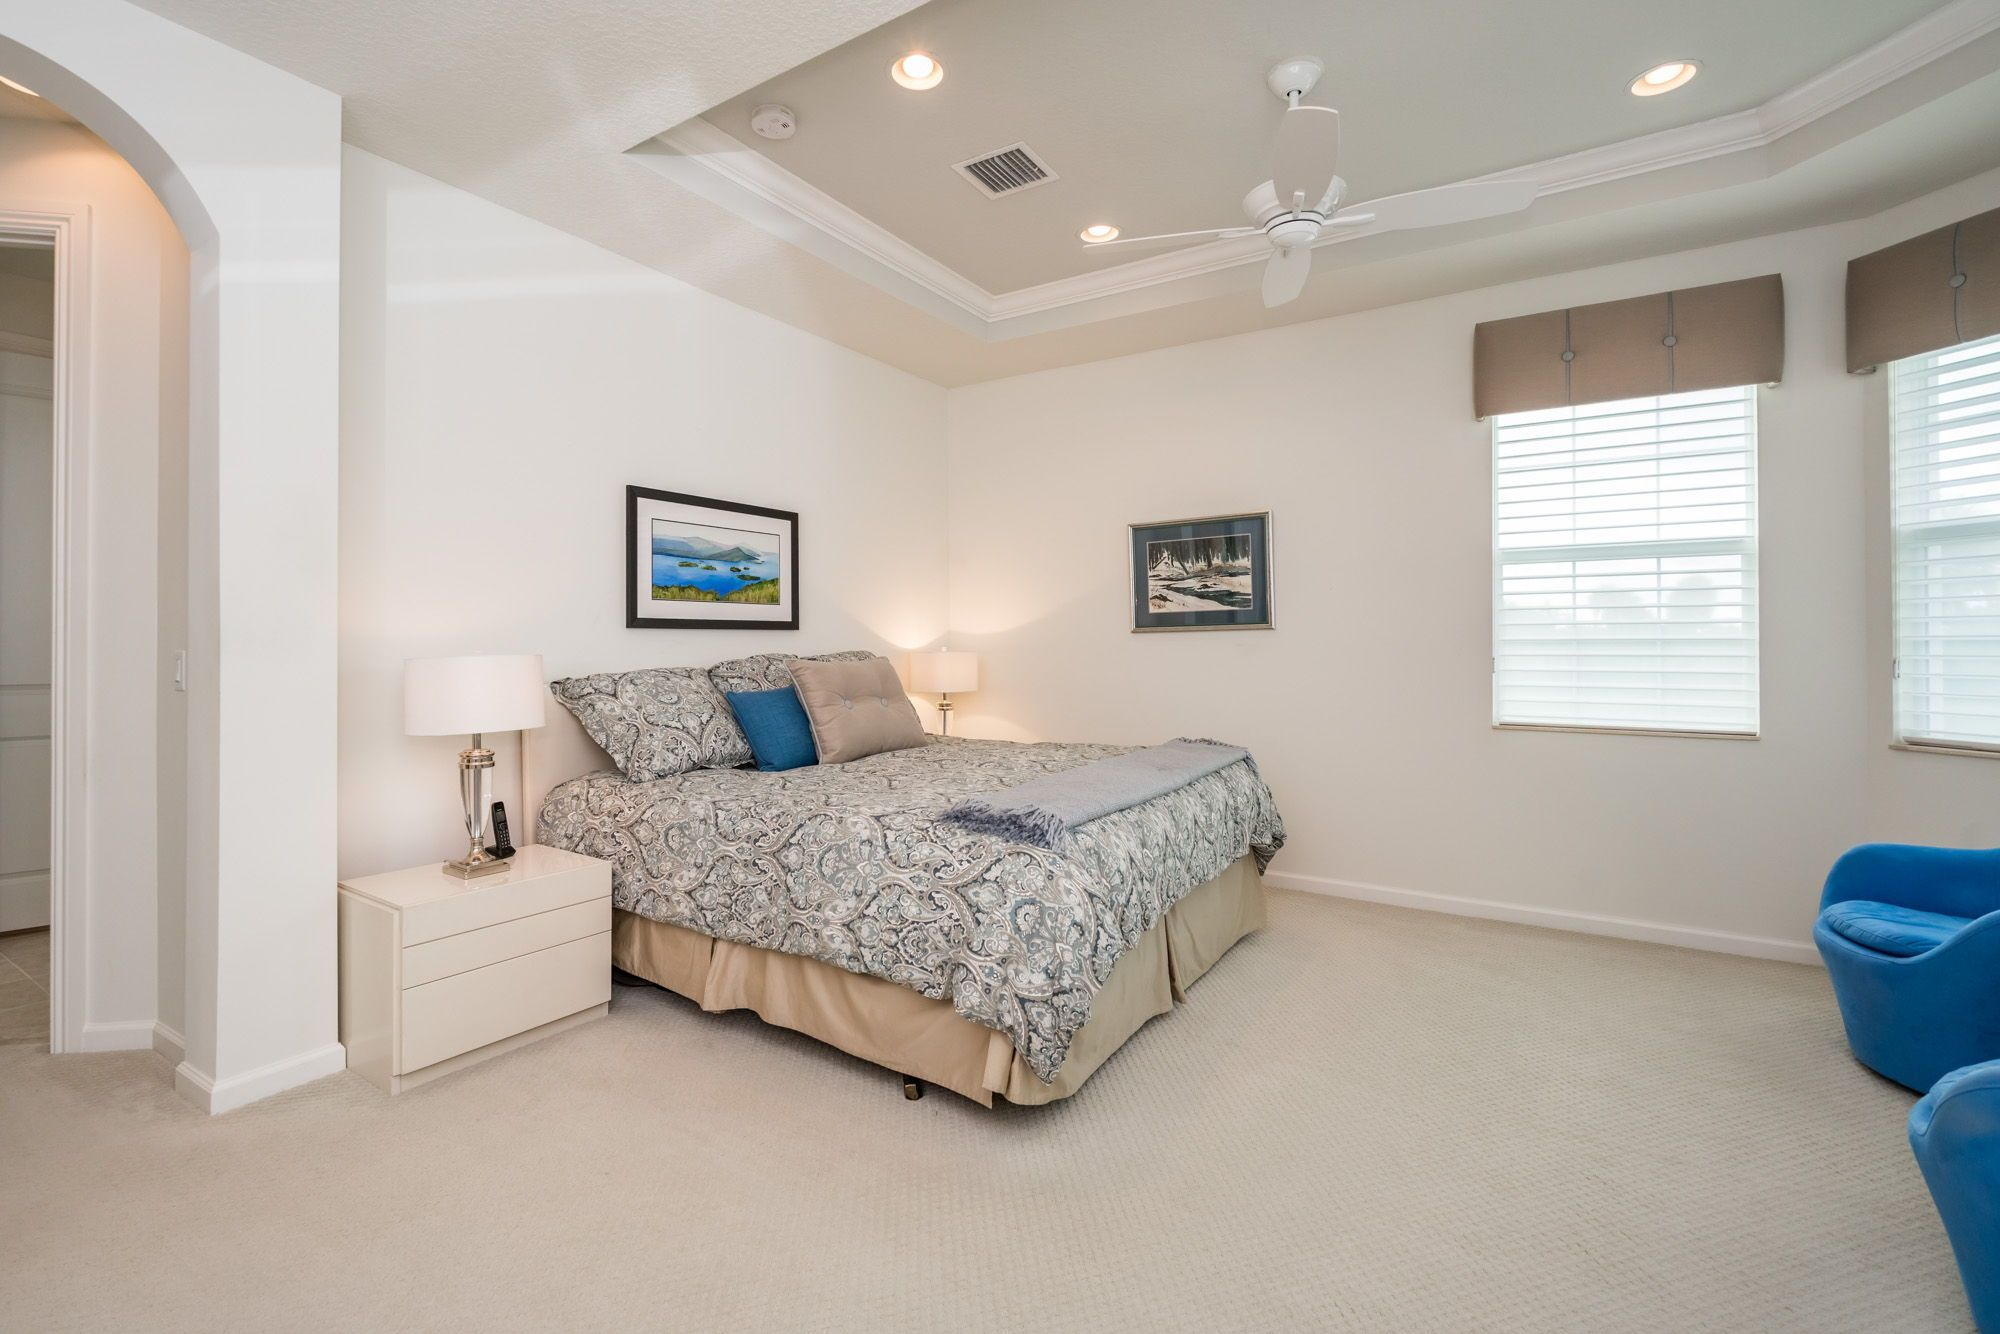 The Master Suite Has A Tray Ceiling With Recessed Lighting Crown Molding Large Windows With Golf Views Carpeted Fl Luxury Homes Bedroom Design House Design